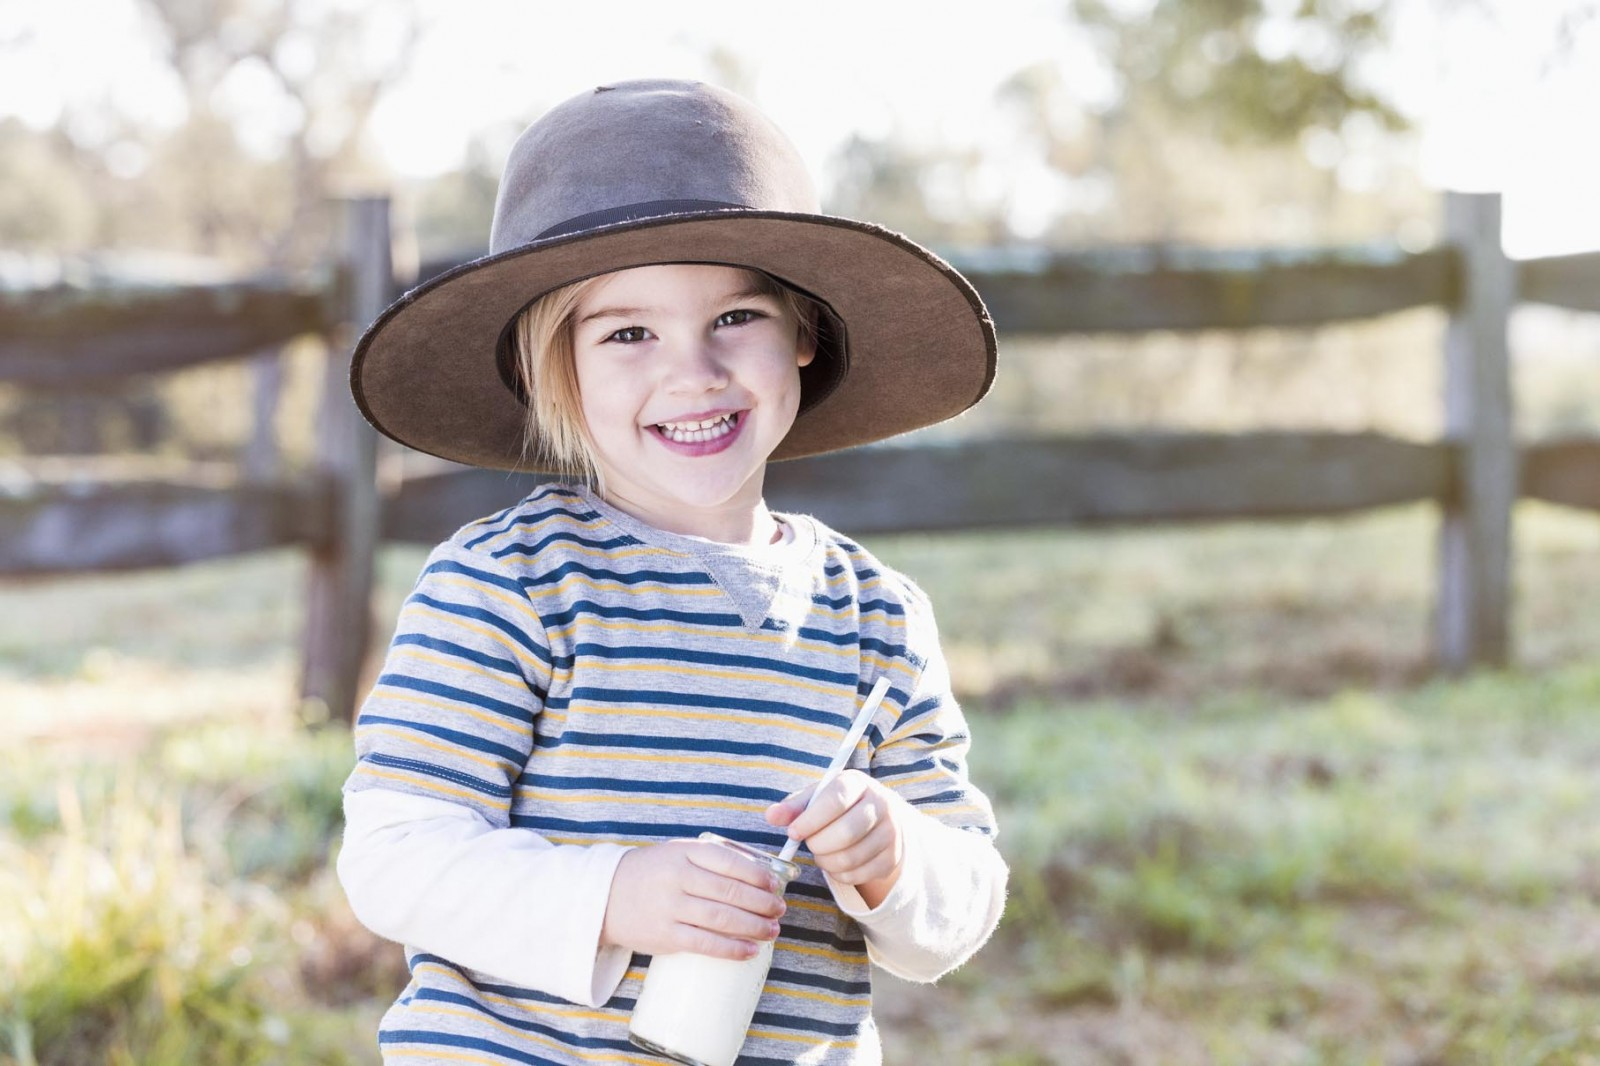 Sydney leading kids lifestyle and fashion photographer Michelle Young shoots the latest lfestyle campaign for Bellamys Organic. Stylist Sheridan Davey. Hair and Makeup Jessica Diez using fabulous...